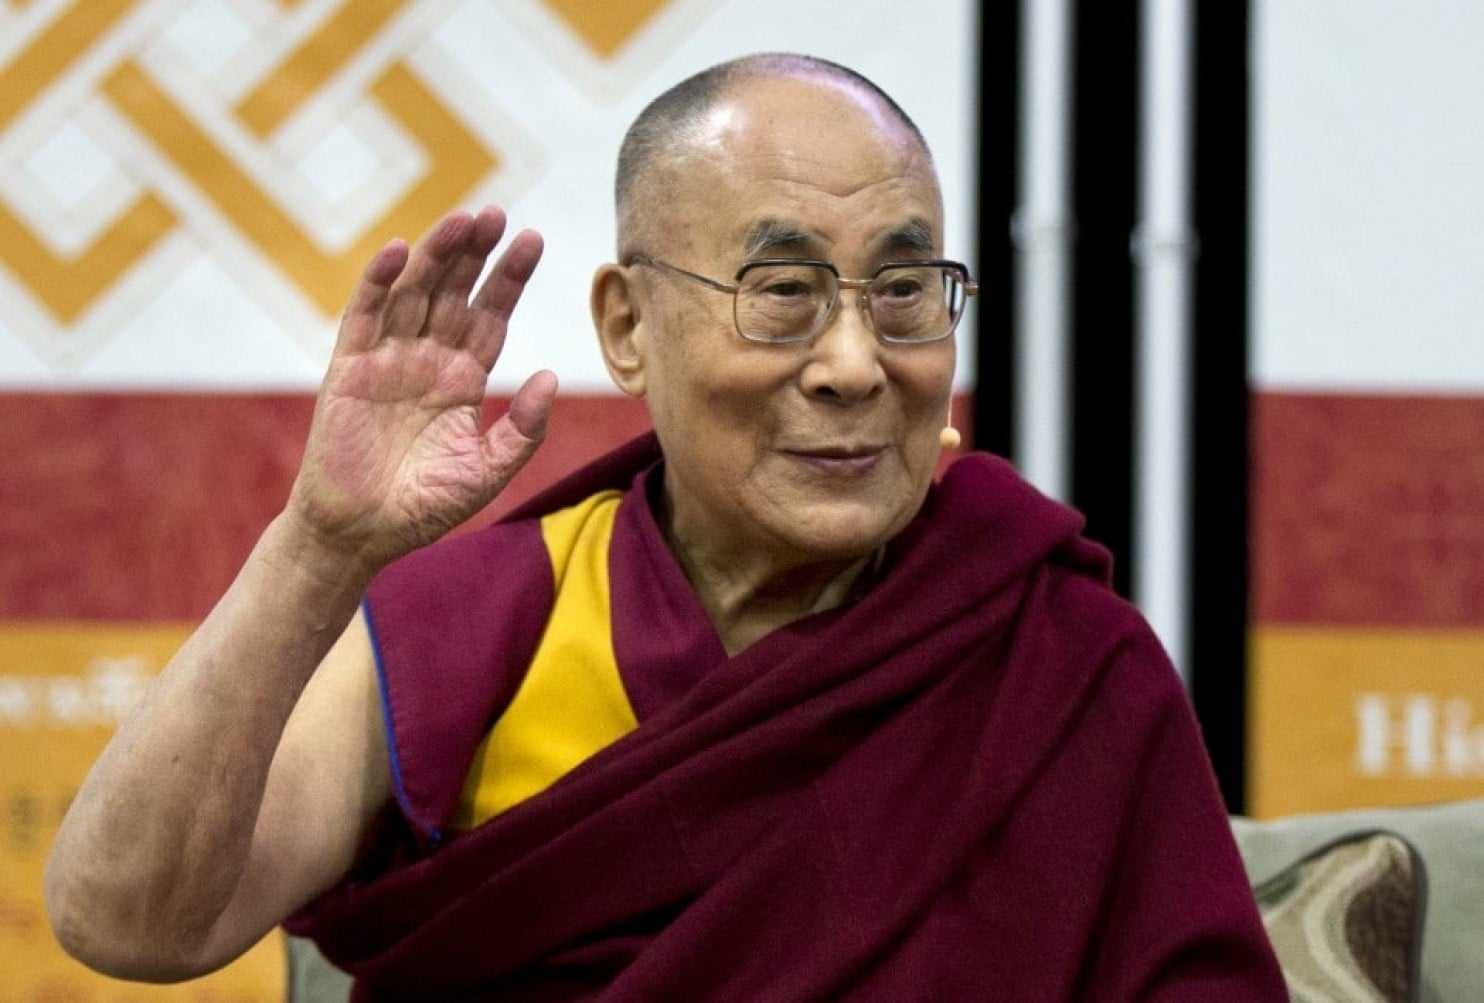 The Dalai Lama Speaks On Trump And America First Central Tibetan Administration